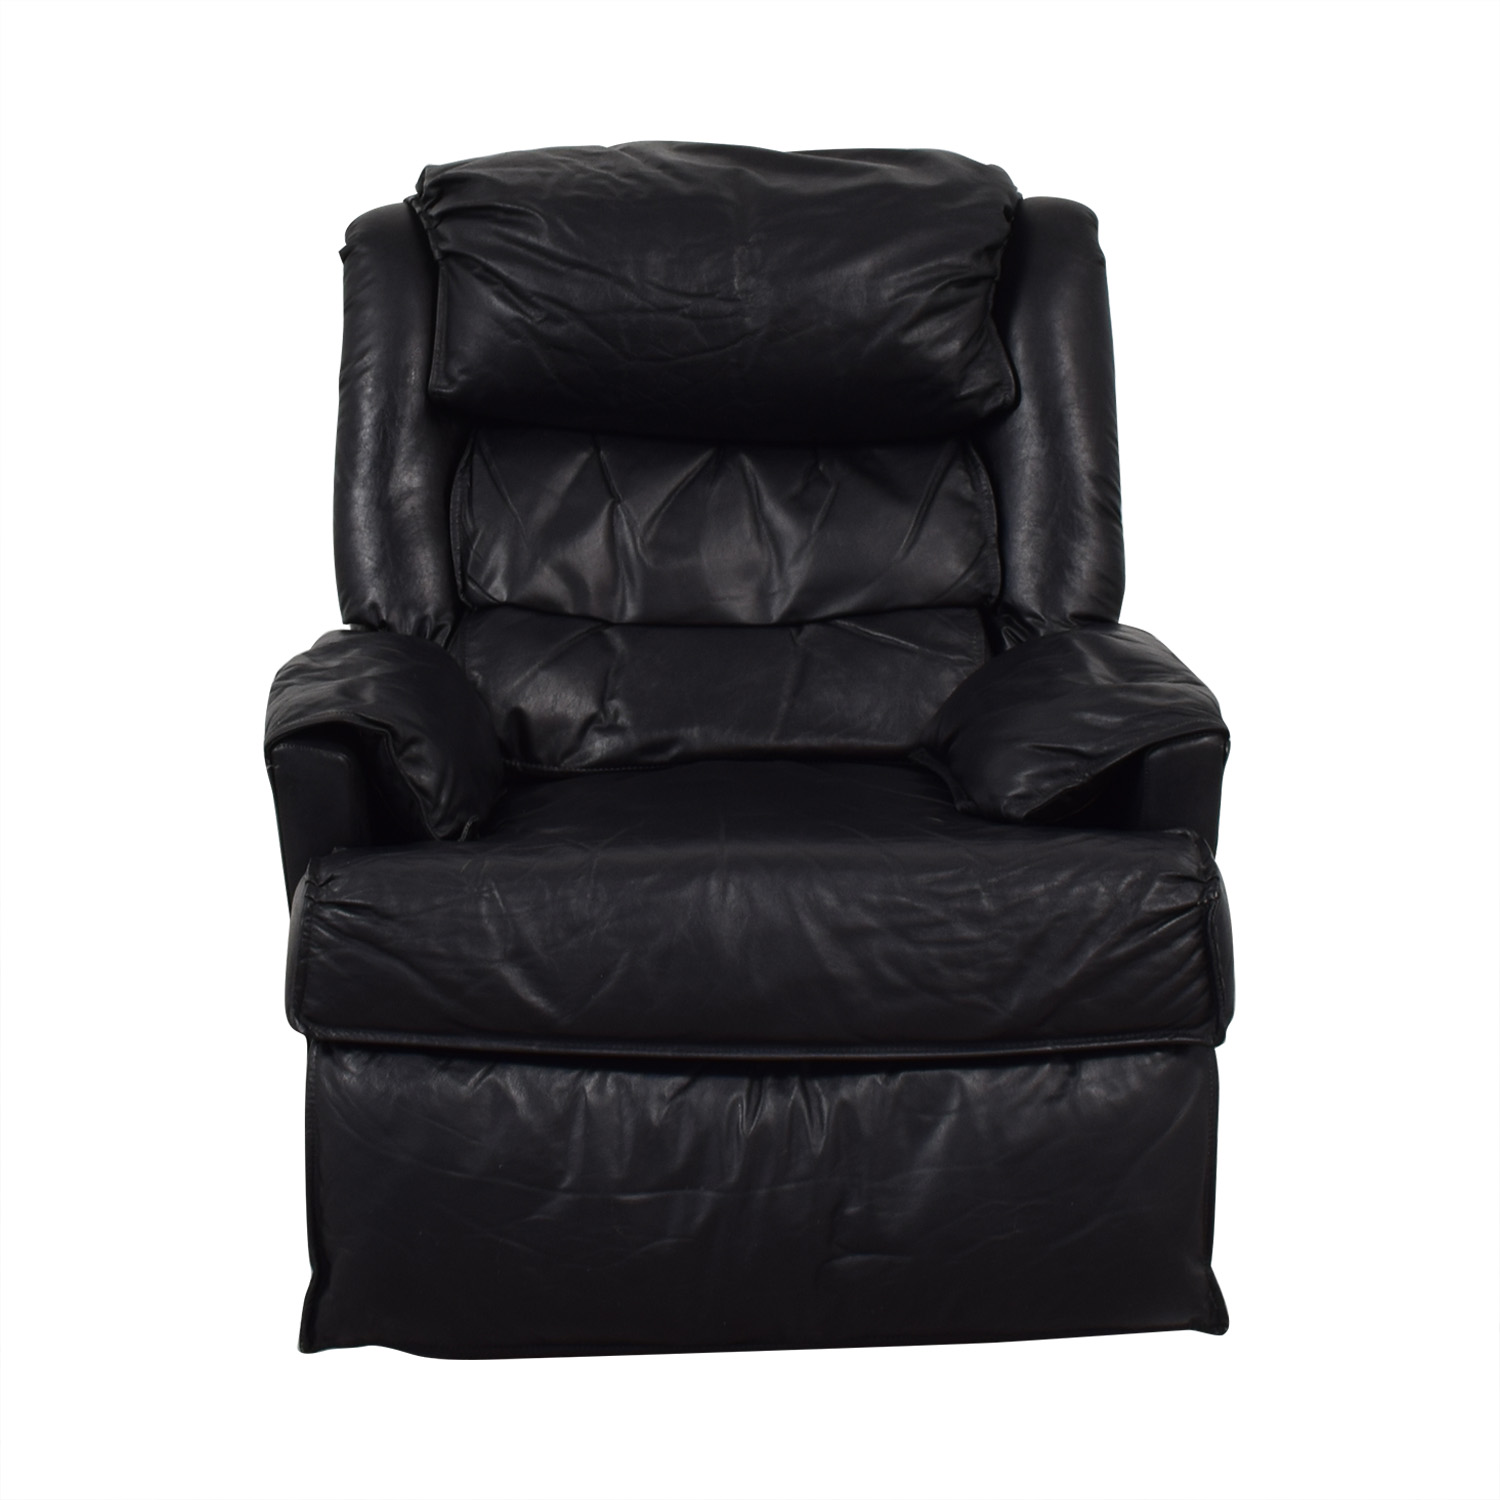 shop Barcalounger Leather Recliner Barcalounger Chairs